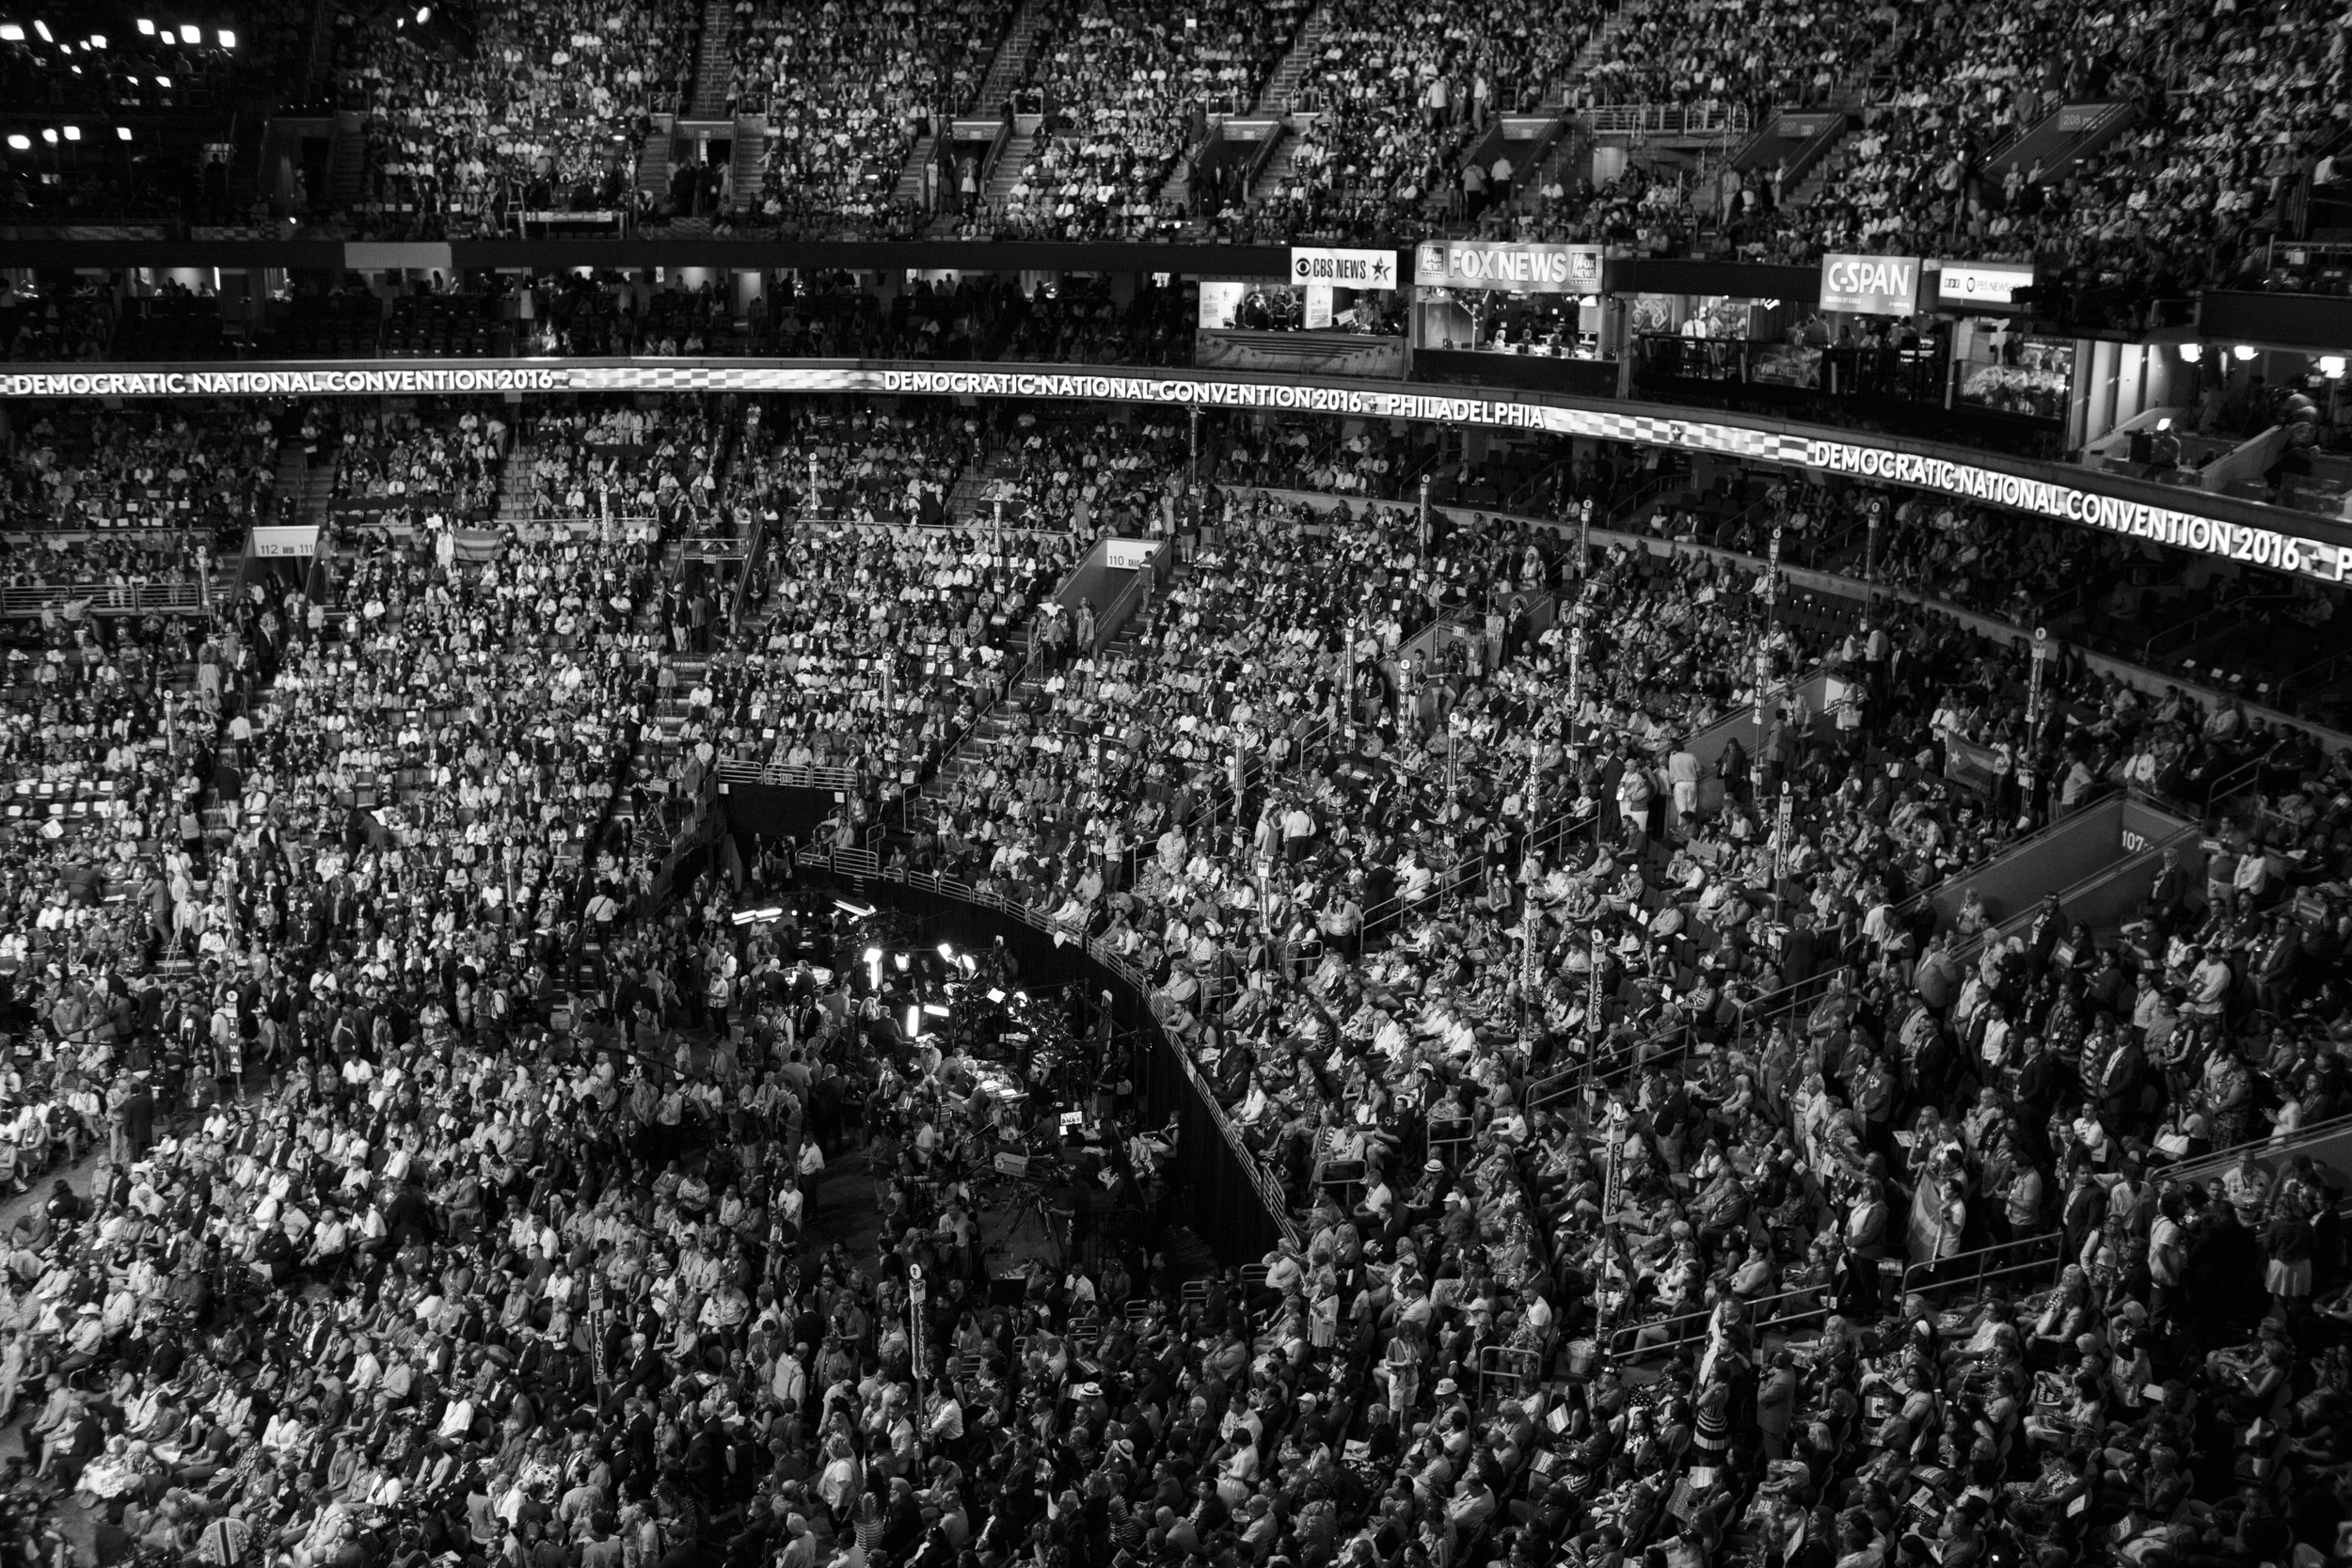 27 July 2016 - Philadelphia, PA - The Wells Fargo Center is packed on the third day of the Democratic National Convention. President Barack Obama and Vice President Joe Biden are scheduled to speak.Photo: Cédric von Niederhäusern